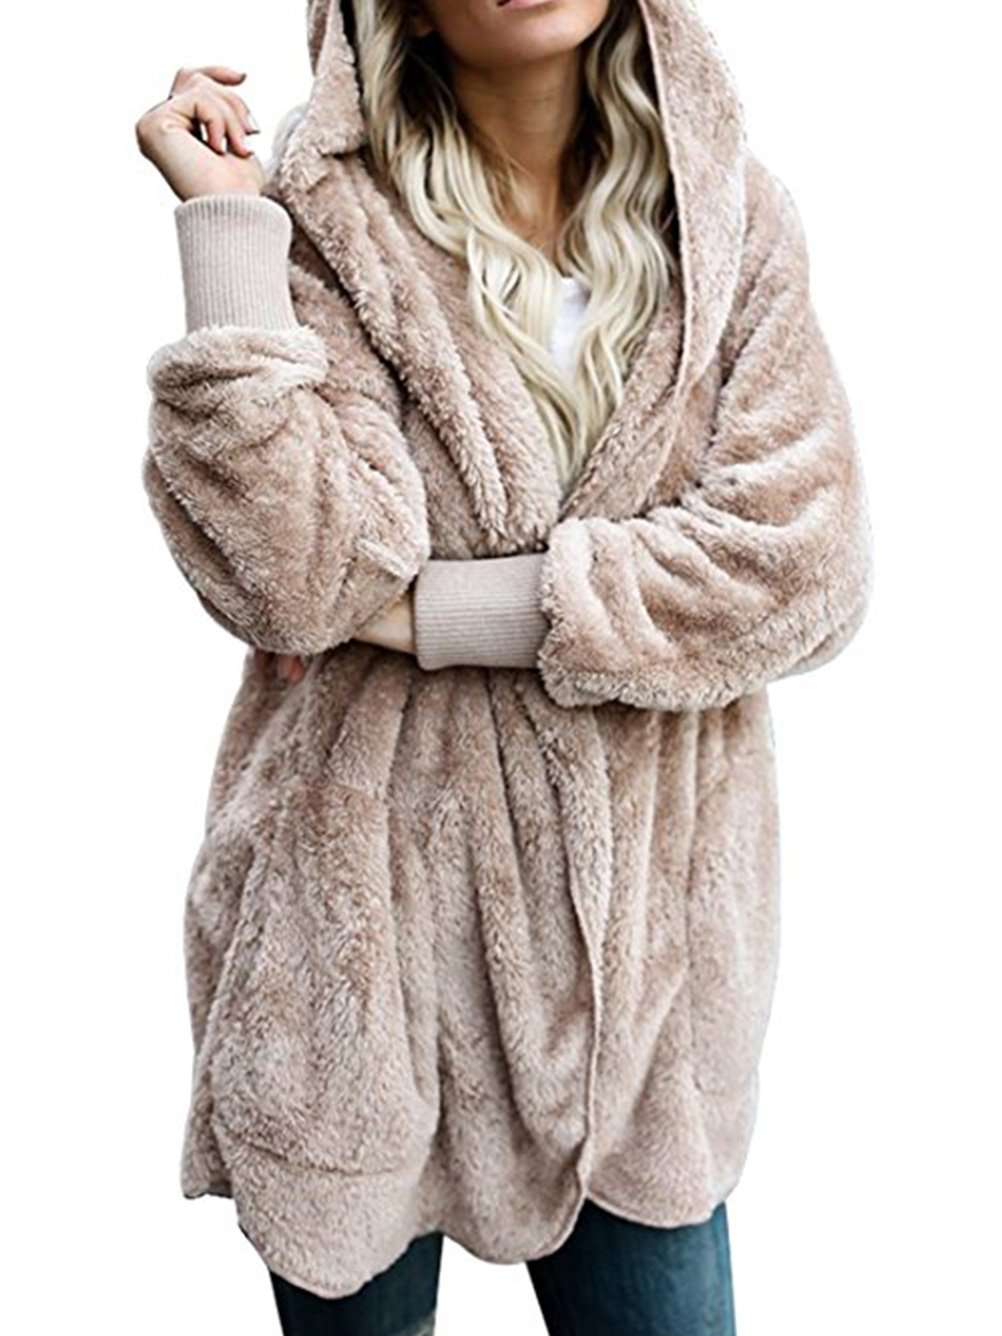 WD-Amour Womens Furry Open Front Hooded Cardigan Jacket Coat Outwear with Pocket(S,Khaki)